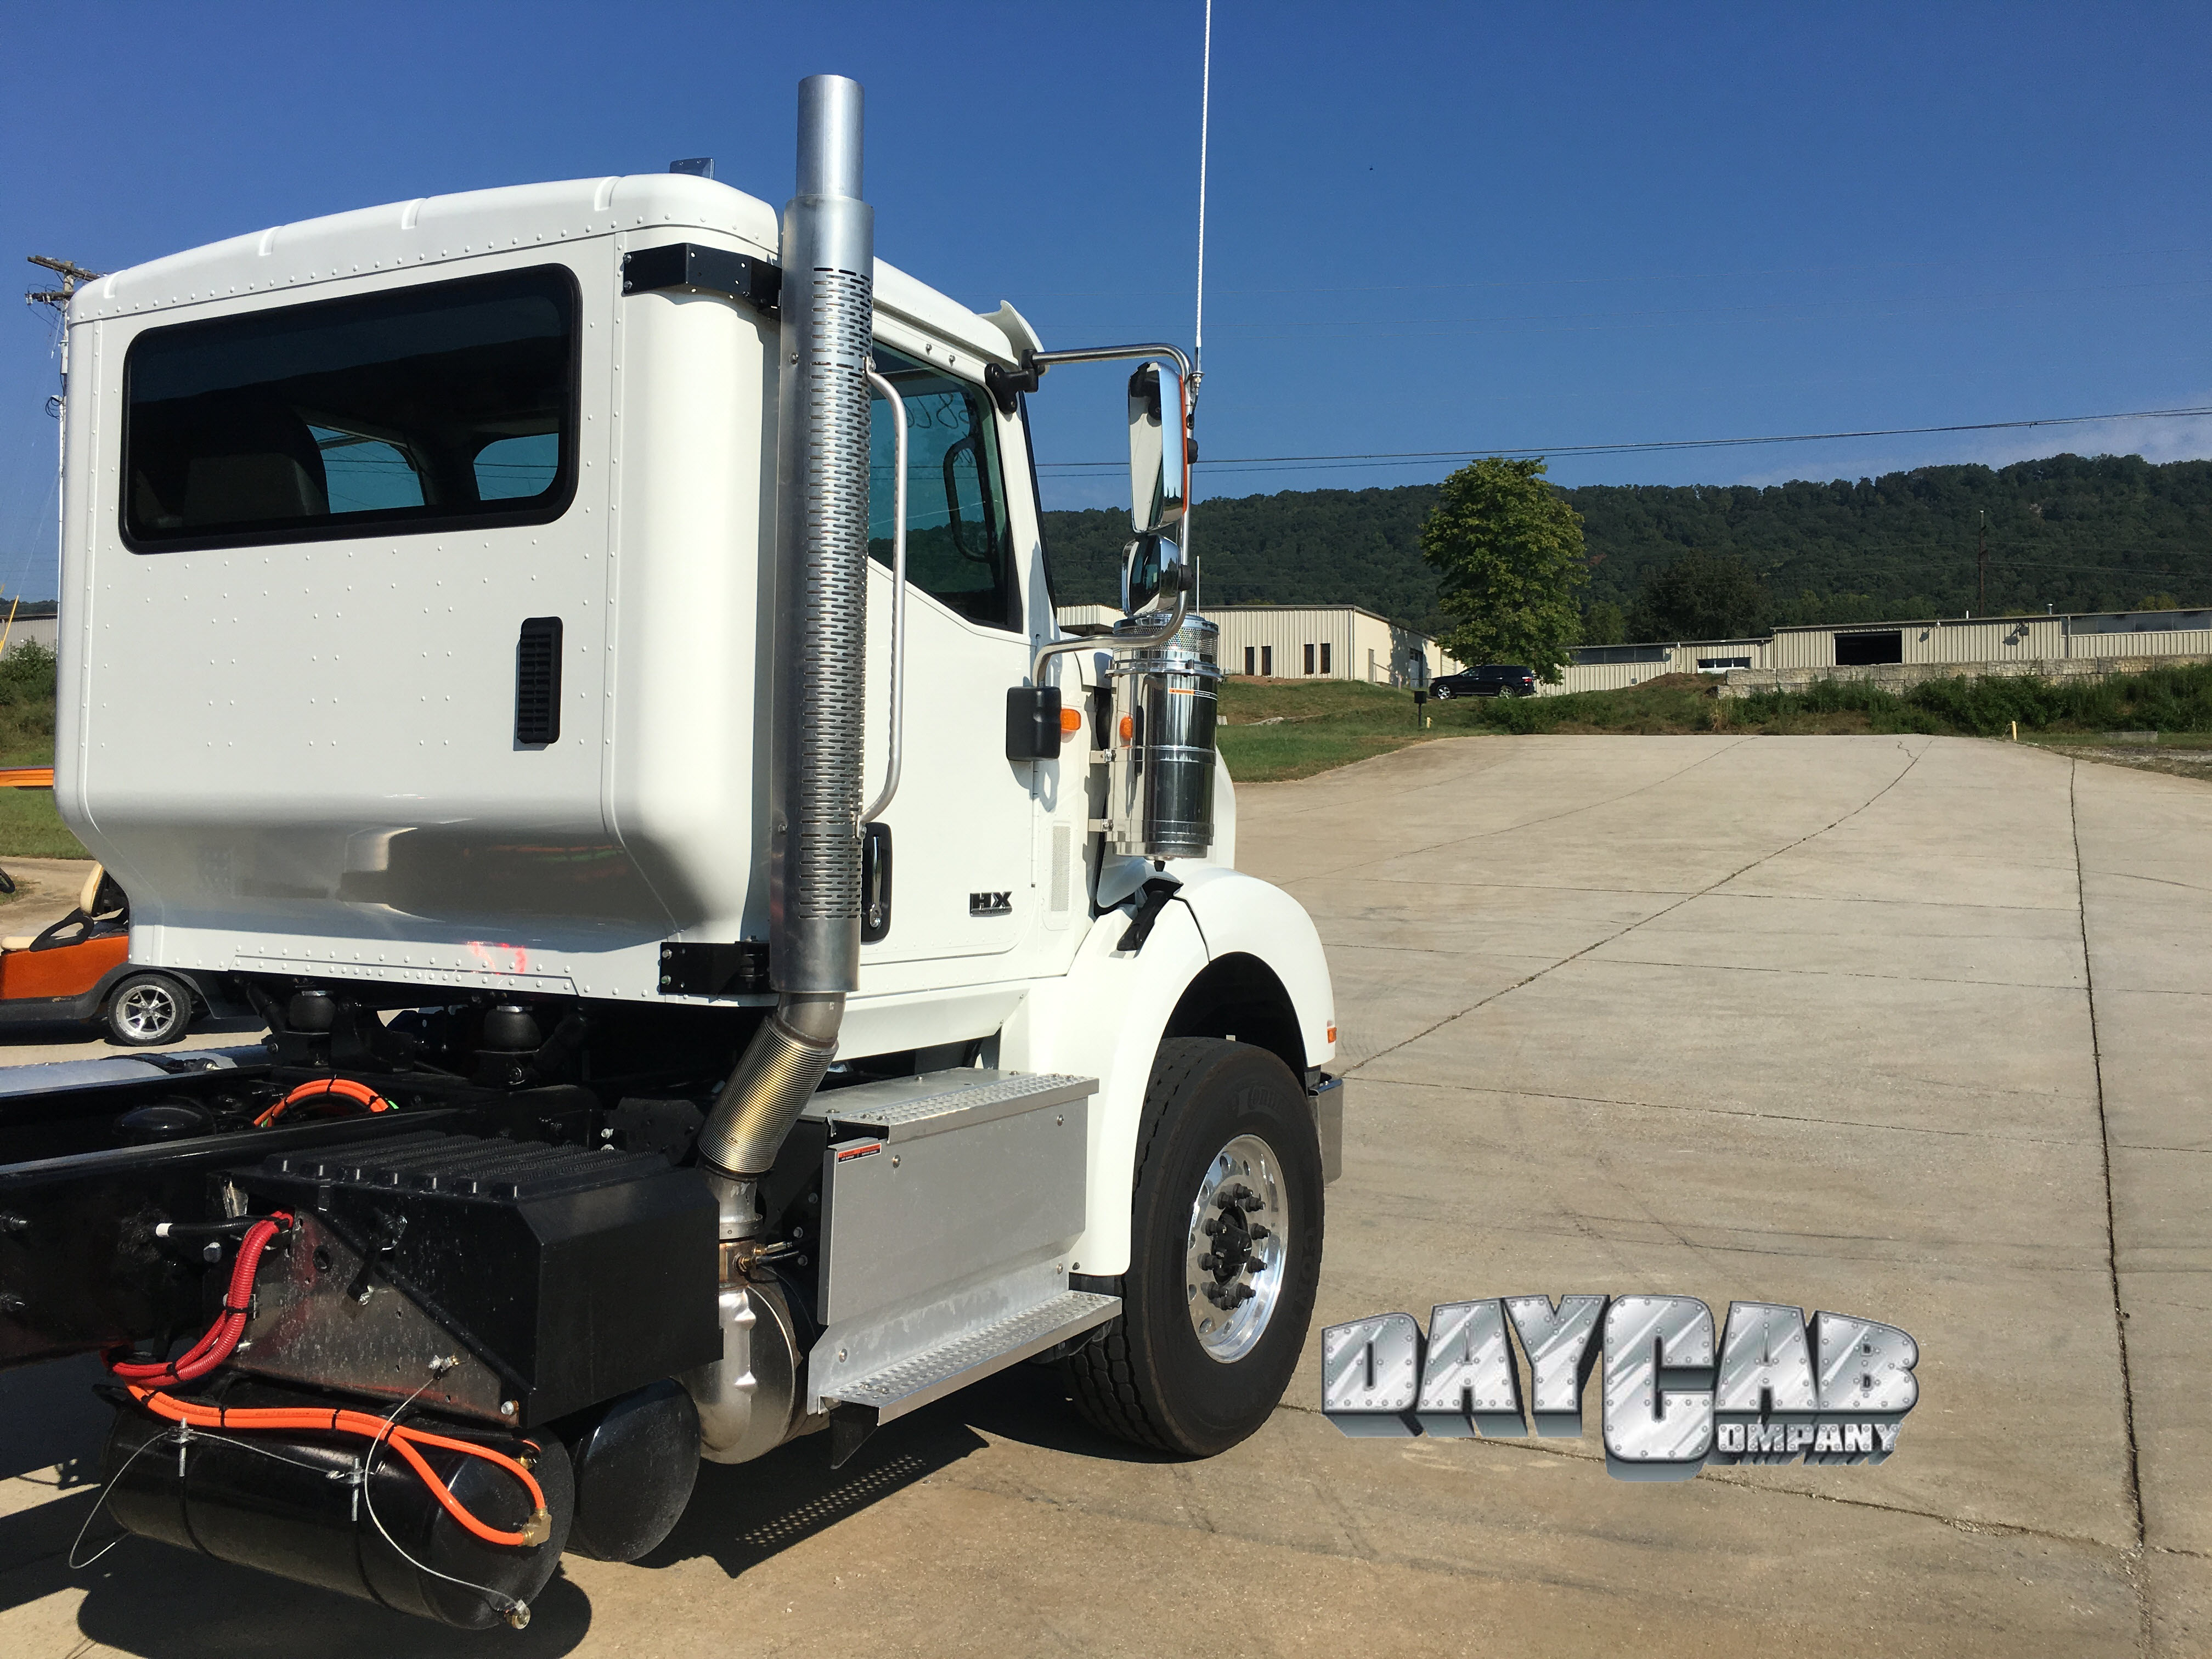 International HX 620 Extended Day Cab Truck - Daycab Company